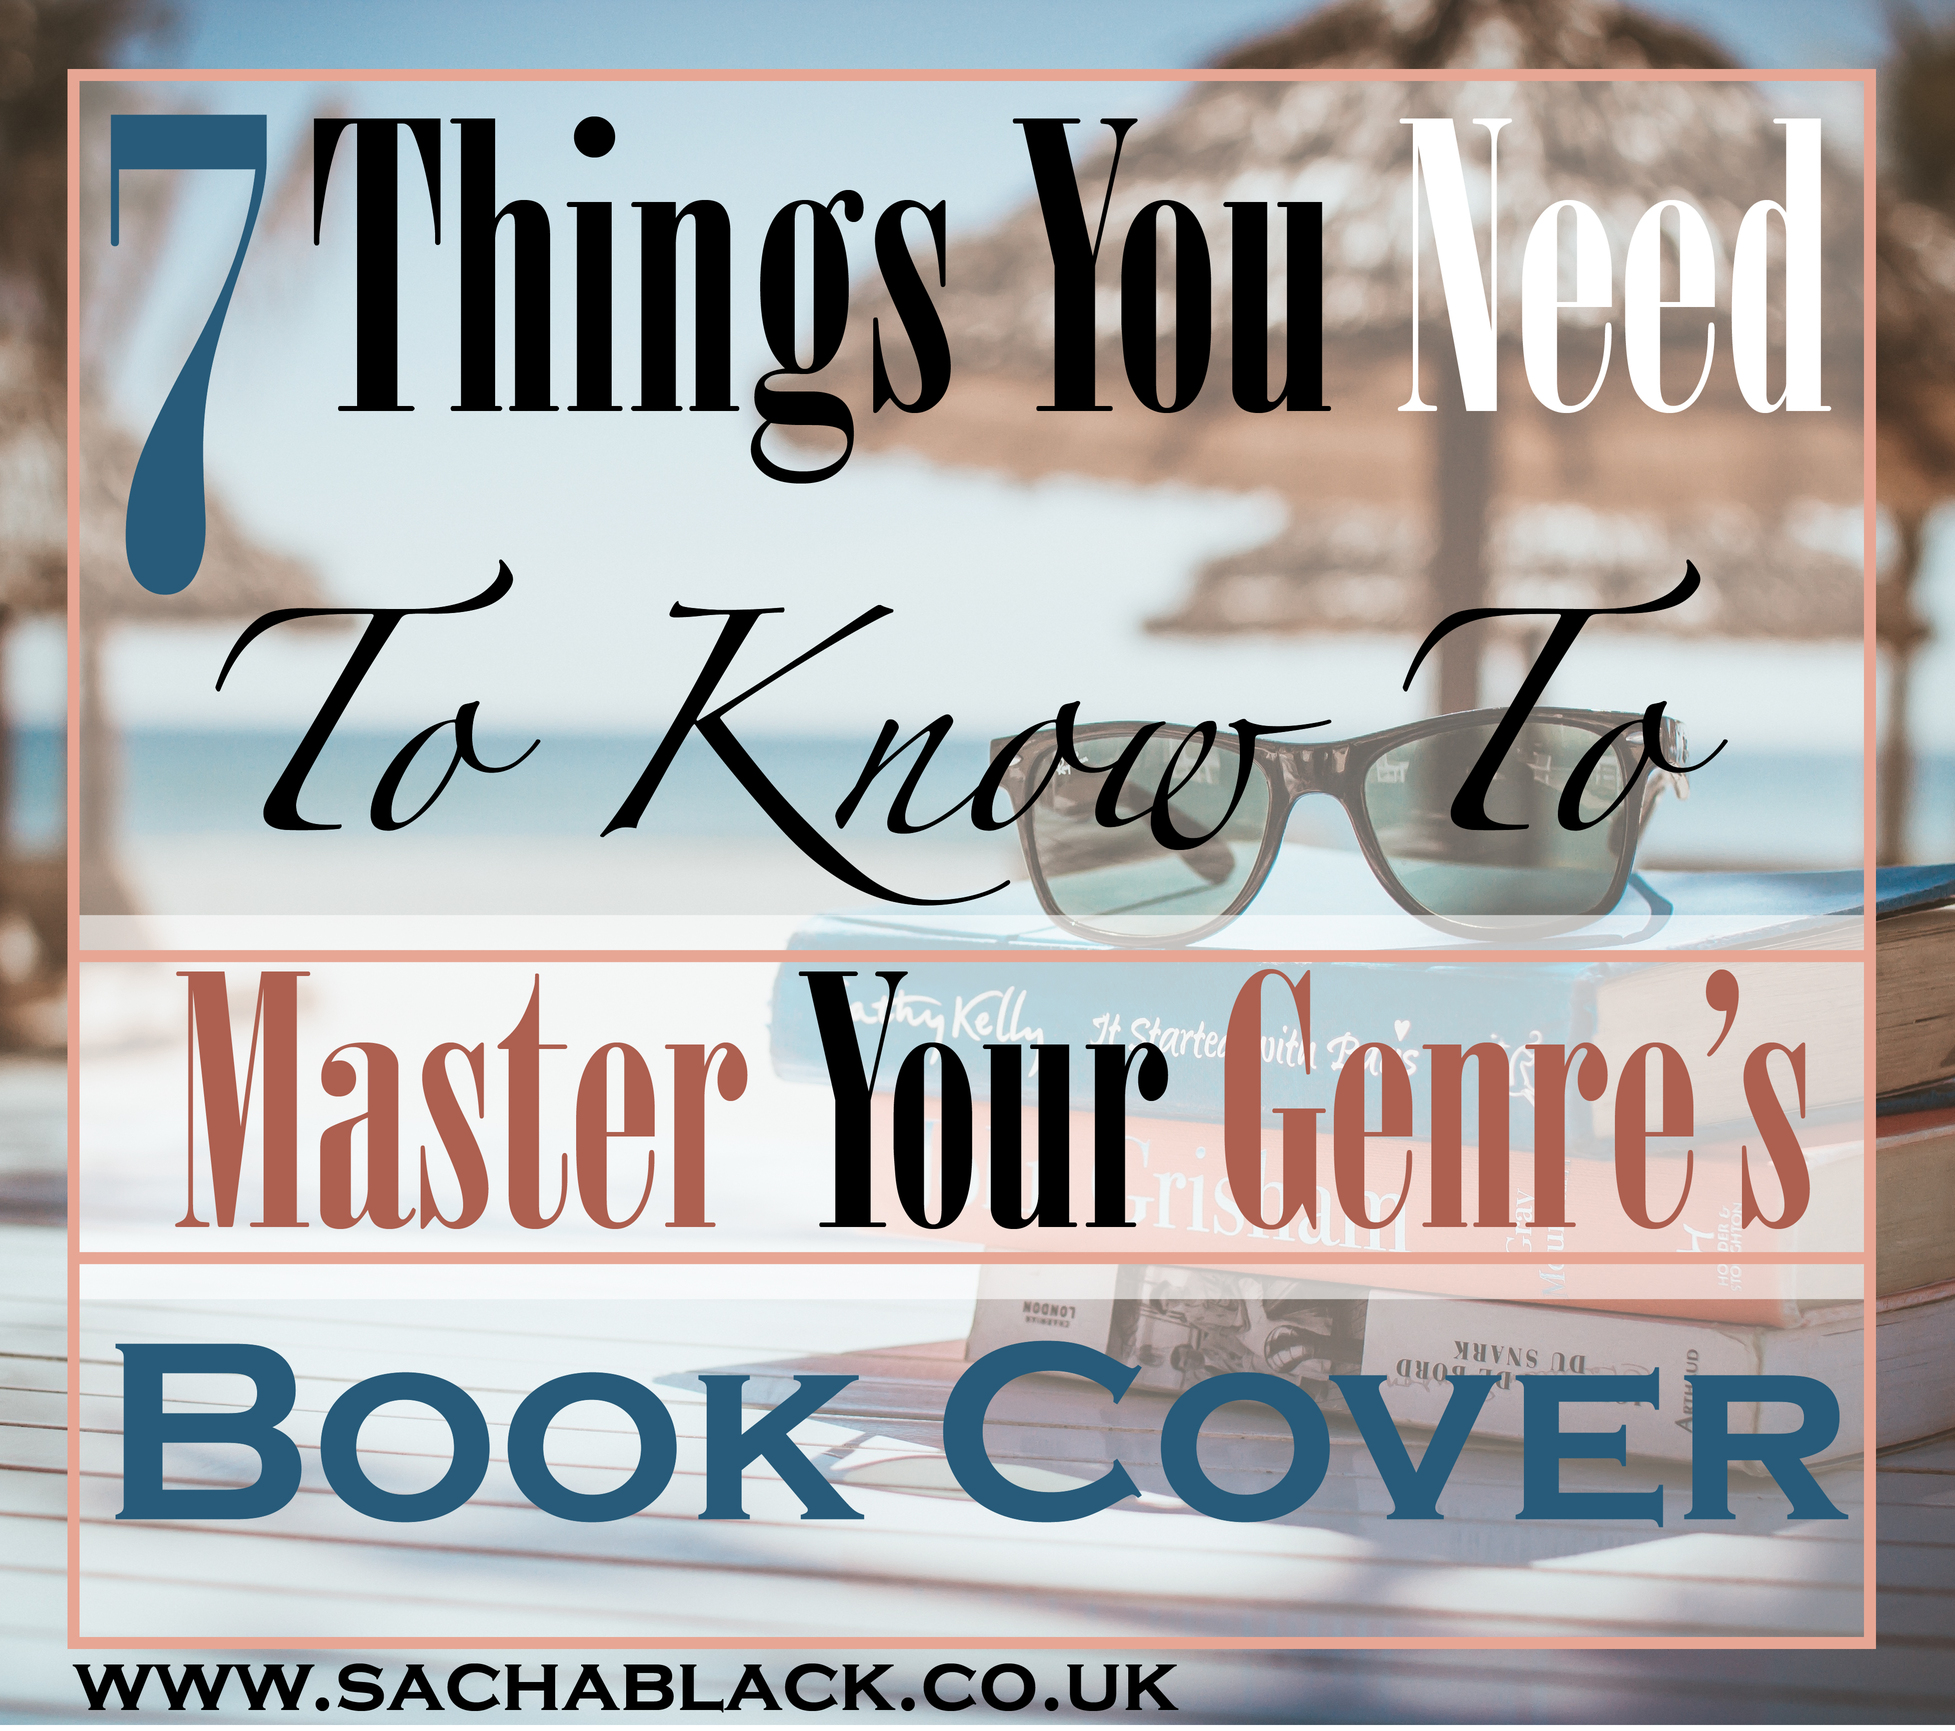 Book Cover Black Uk ~ Things you need to know master your genre s book cover